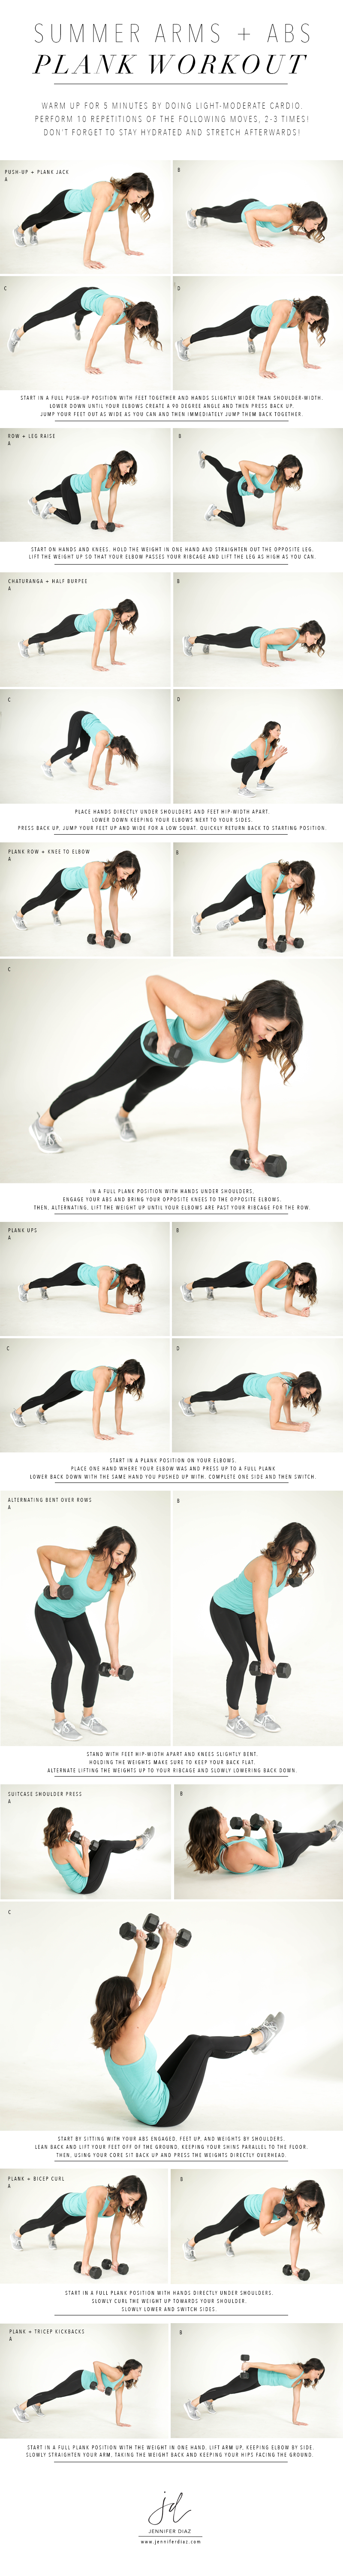 Summer Arms + Abs Plank Workout | Jennifer Diaz | Photos by Kelsey Cherry